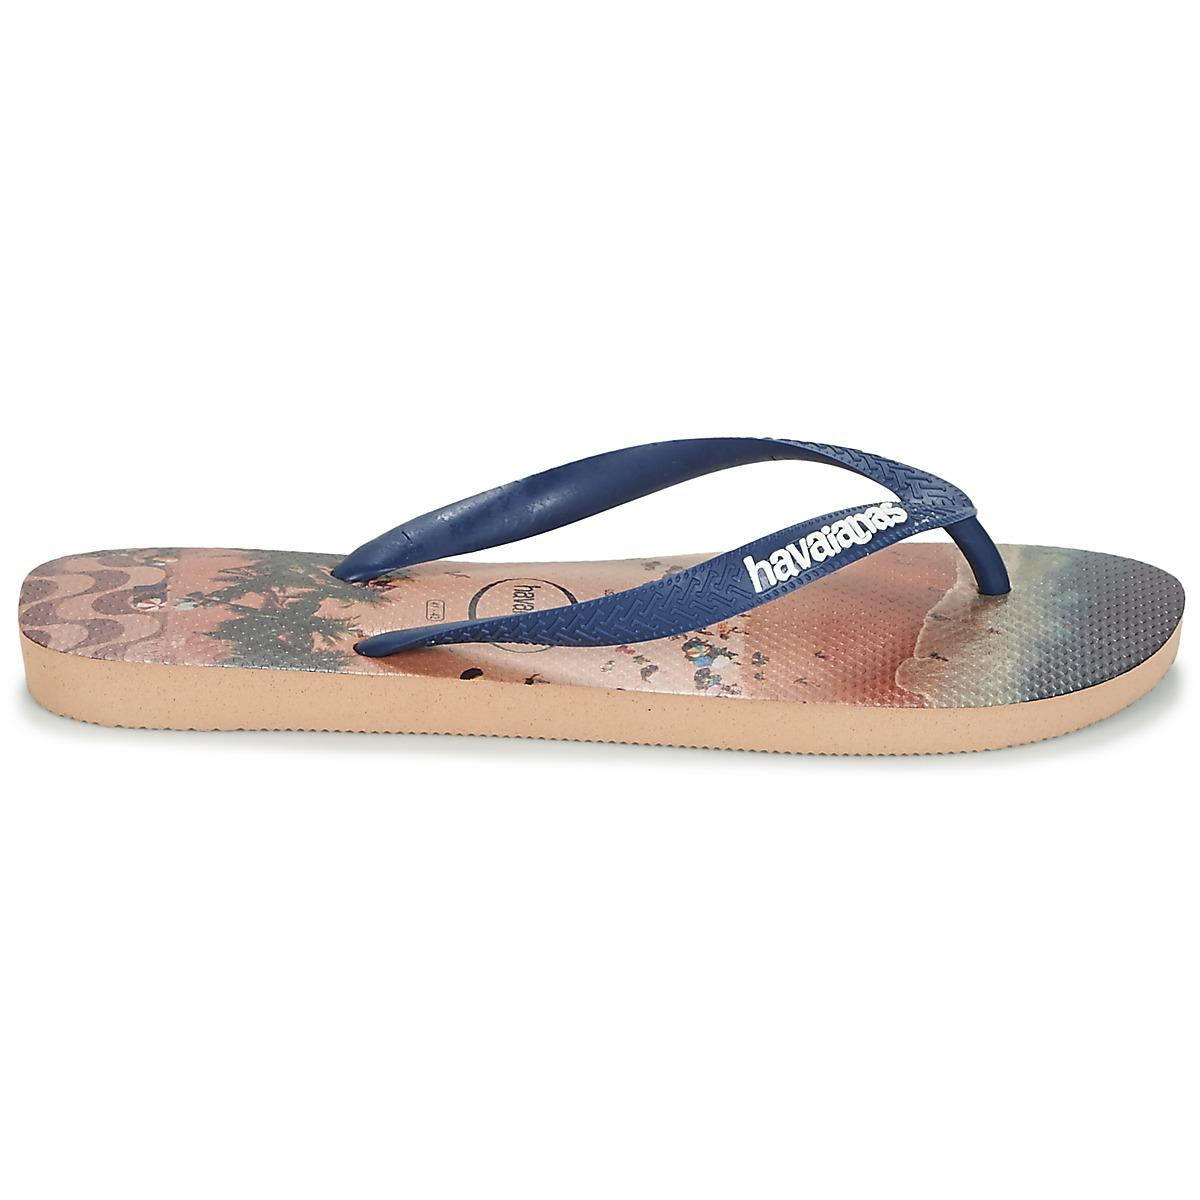 6ad6461bc071 Havaianas Hype Men s Flip Flops   Sandals (shoes) In Blue in Blue ...